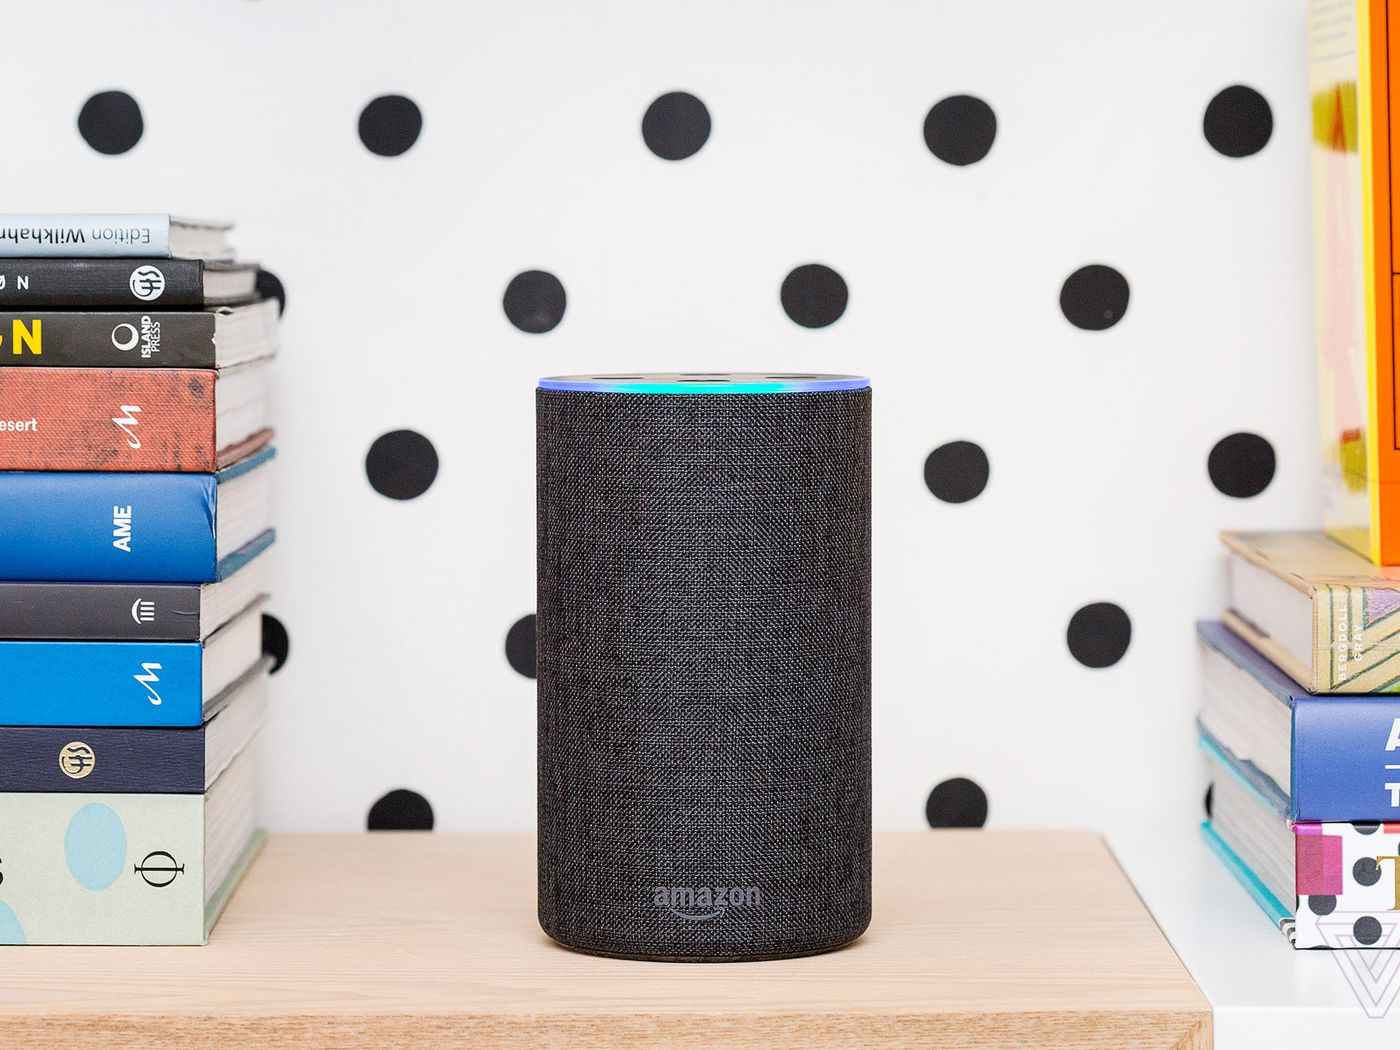 Alexa is becoming more personal with custom responses - The